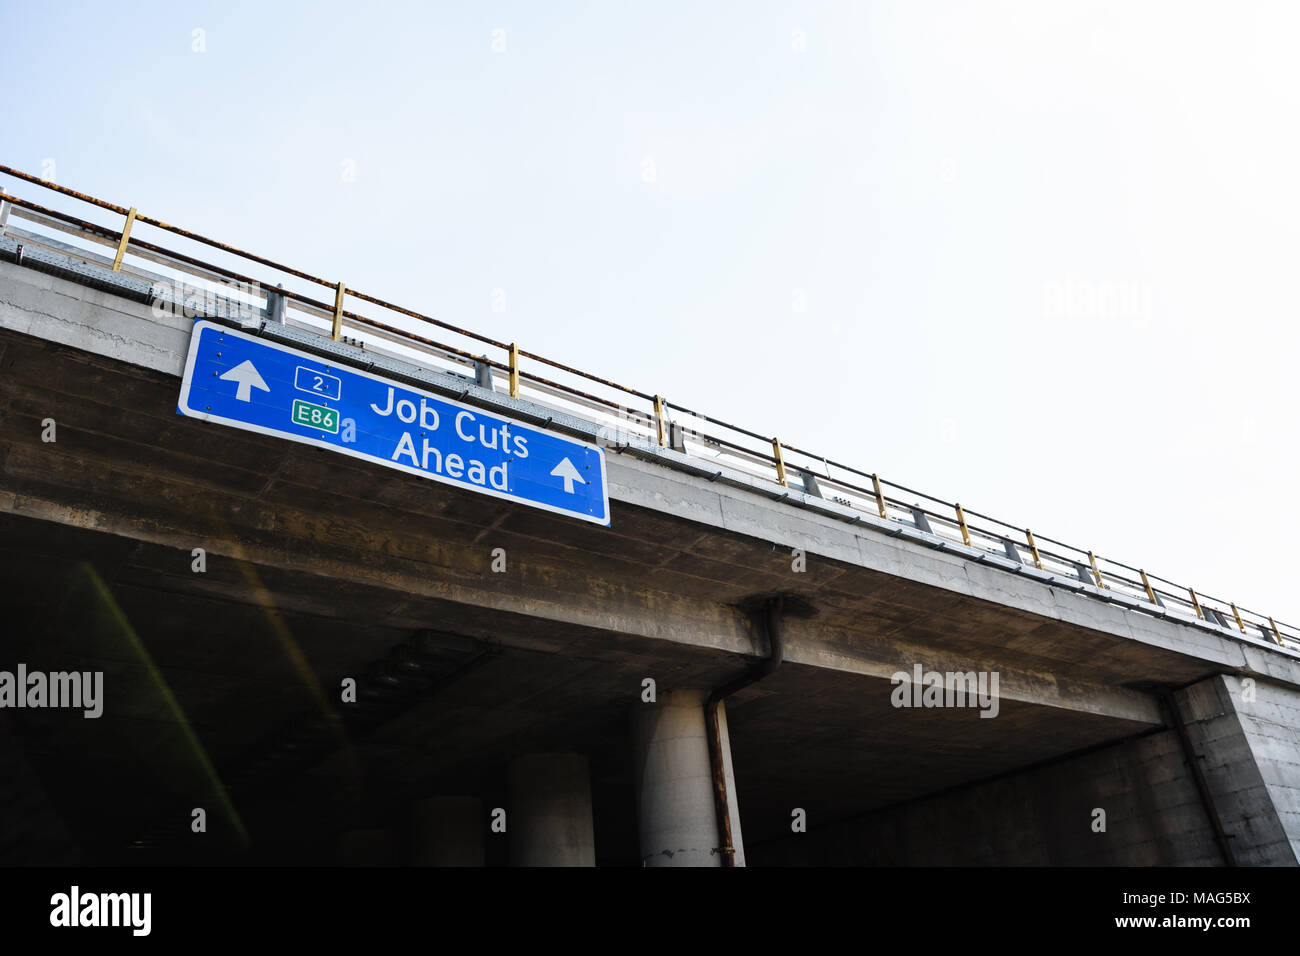 Job Cuts Ahead Blue Road Sign Against Clear Sky - Stock Image